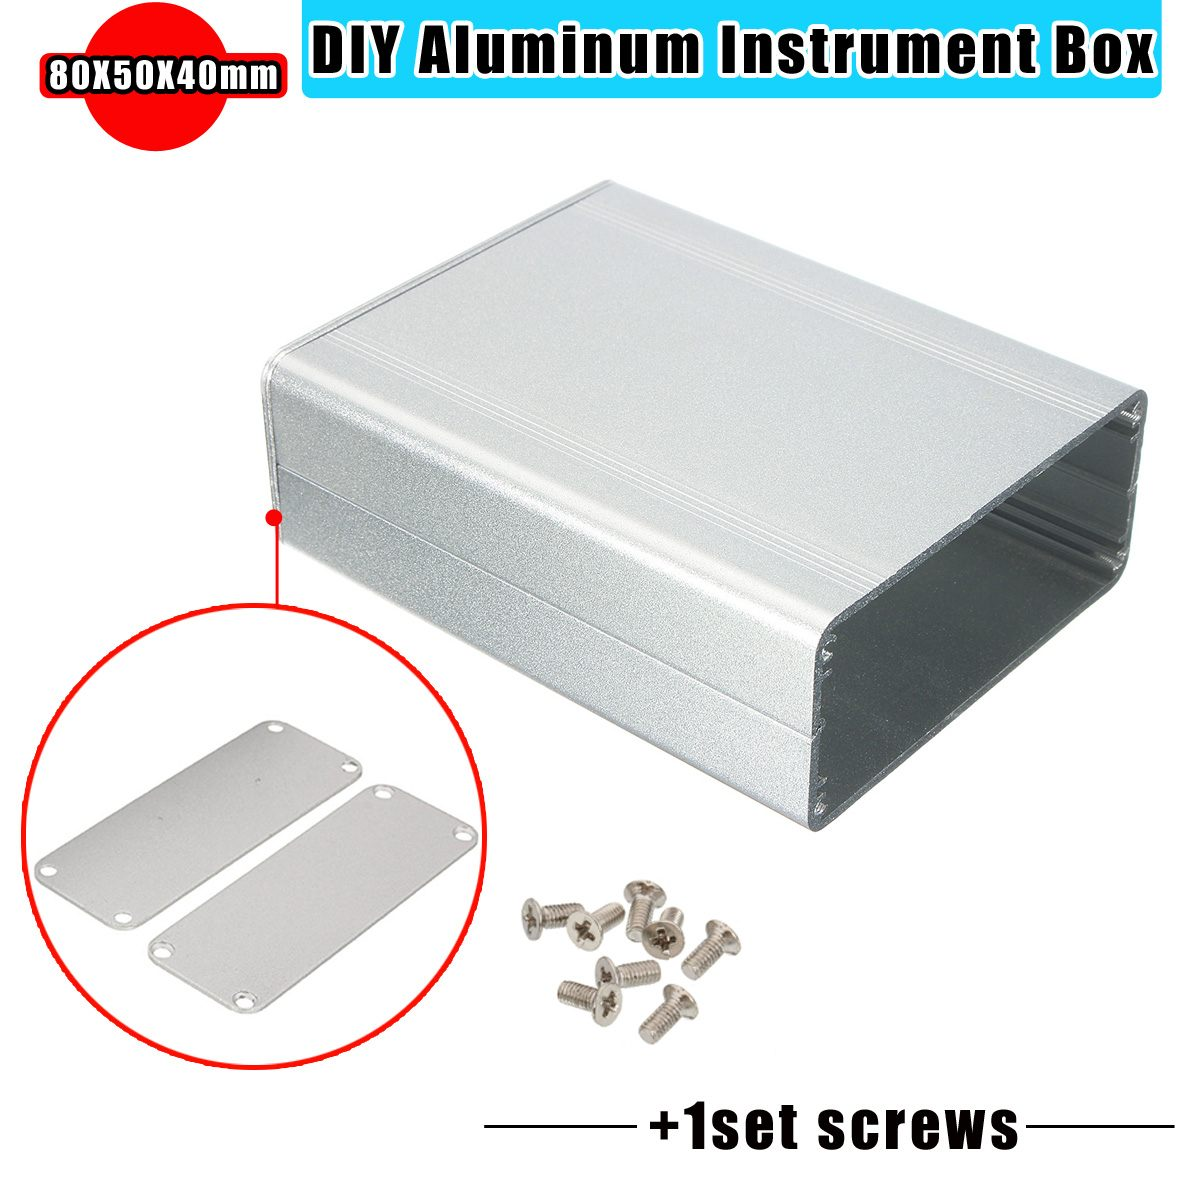 Portable Aluminum Splitted DIY Extruded Electronic Box Project Electronic DIY Enclousure Case DIY Tools Packaging Box